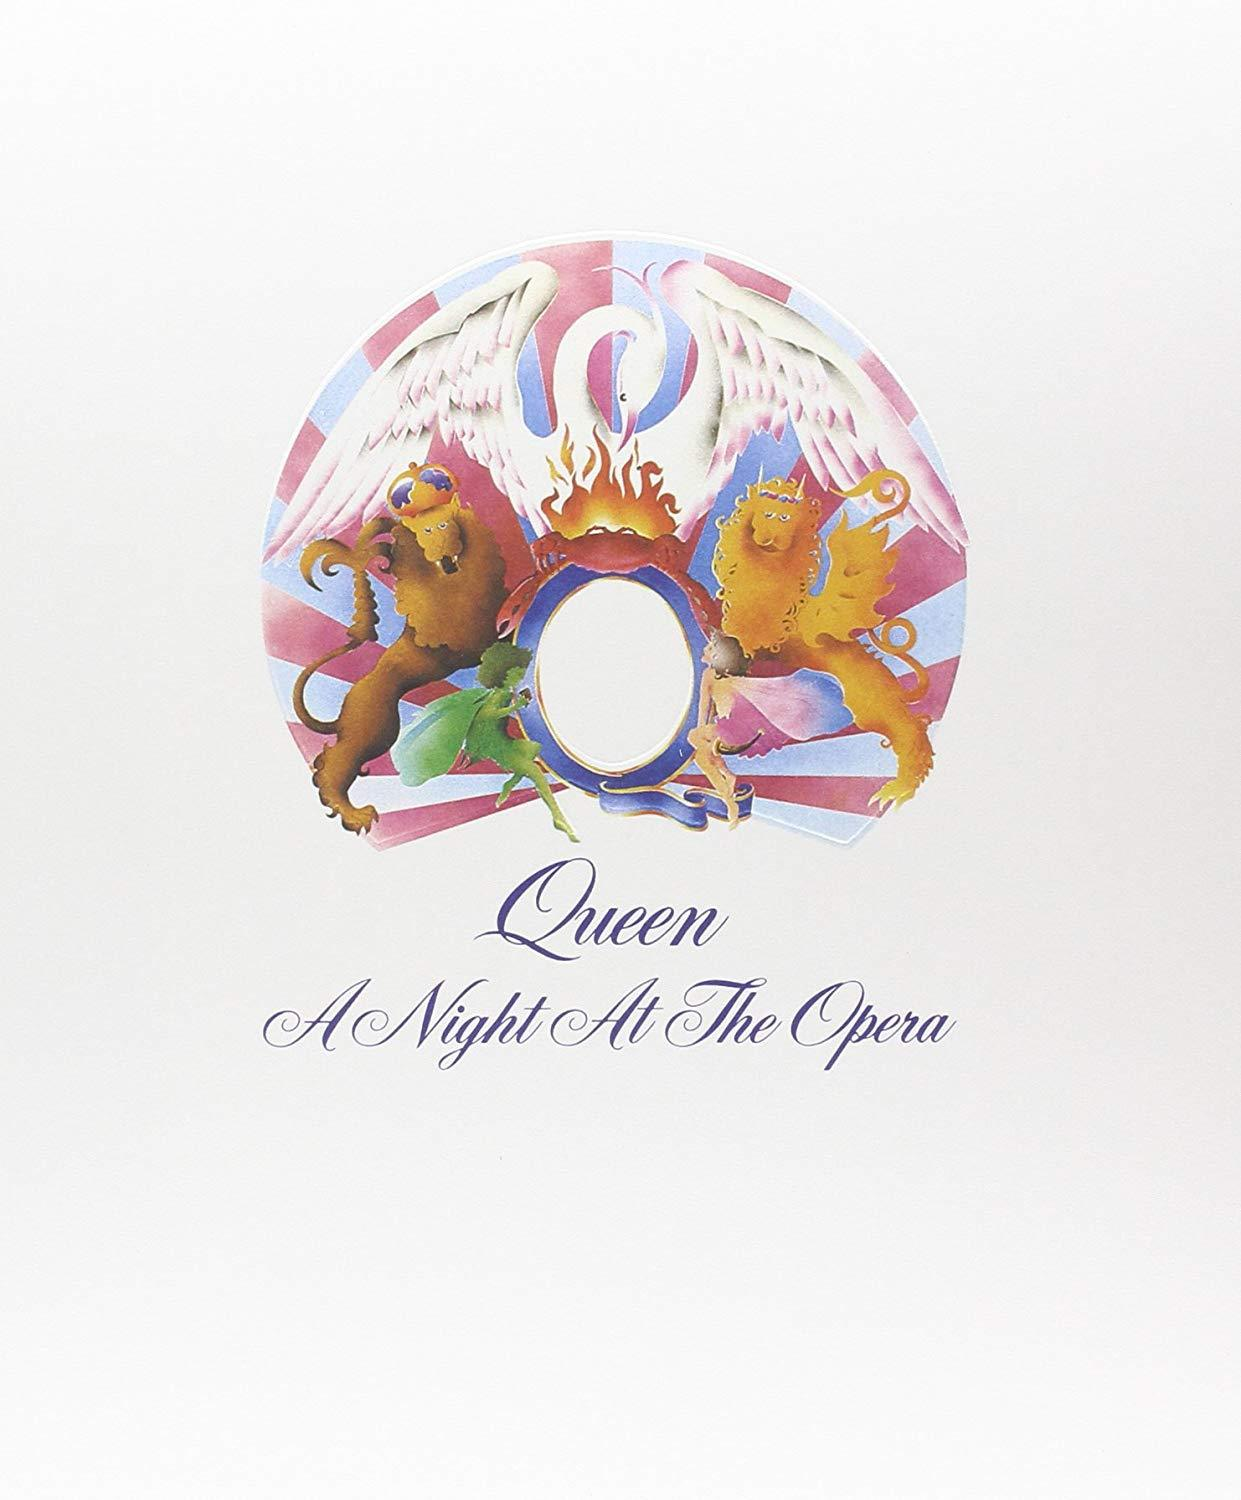 Queen - A Night At The Opera [LP] (180 Gram Vinyl) - Urban Vinyl | Records, Headphones, and more.